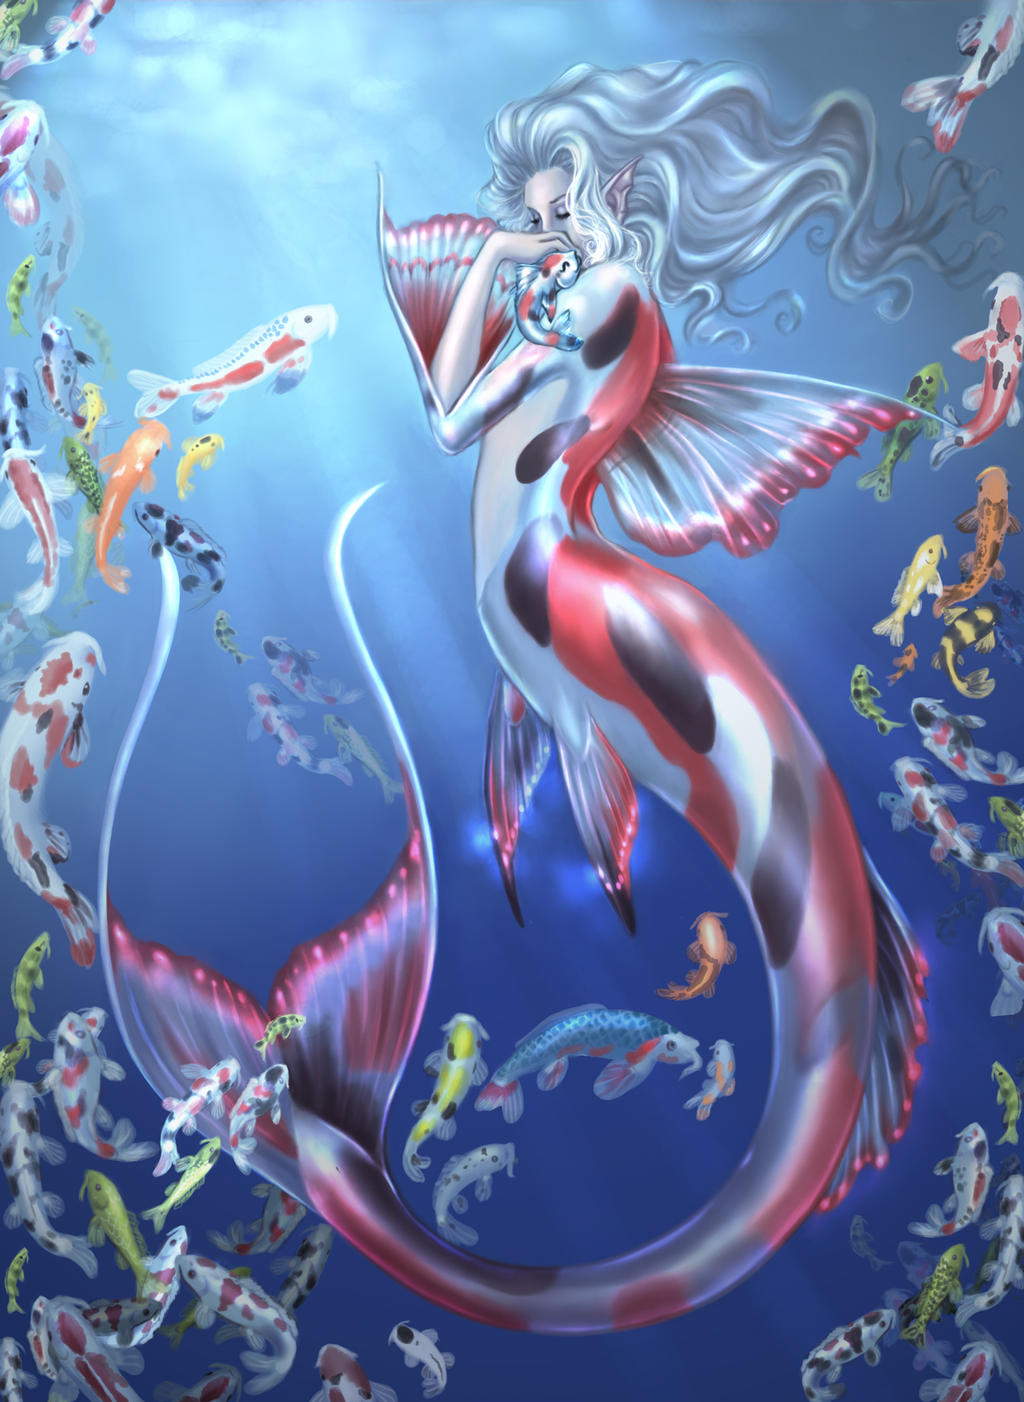 Final koi mermaid and little fish by driany on deviantart for Koi fish tail